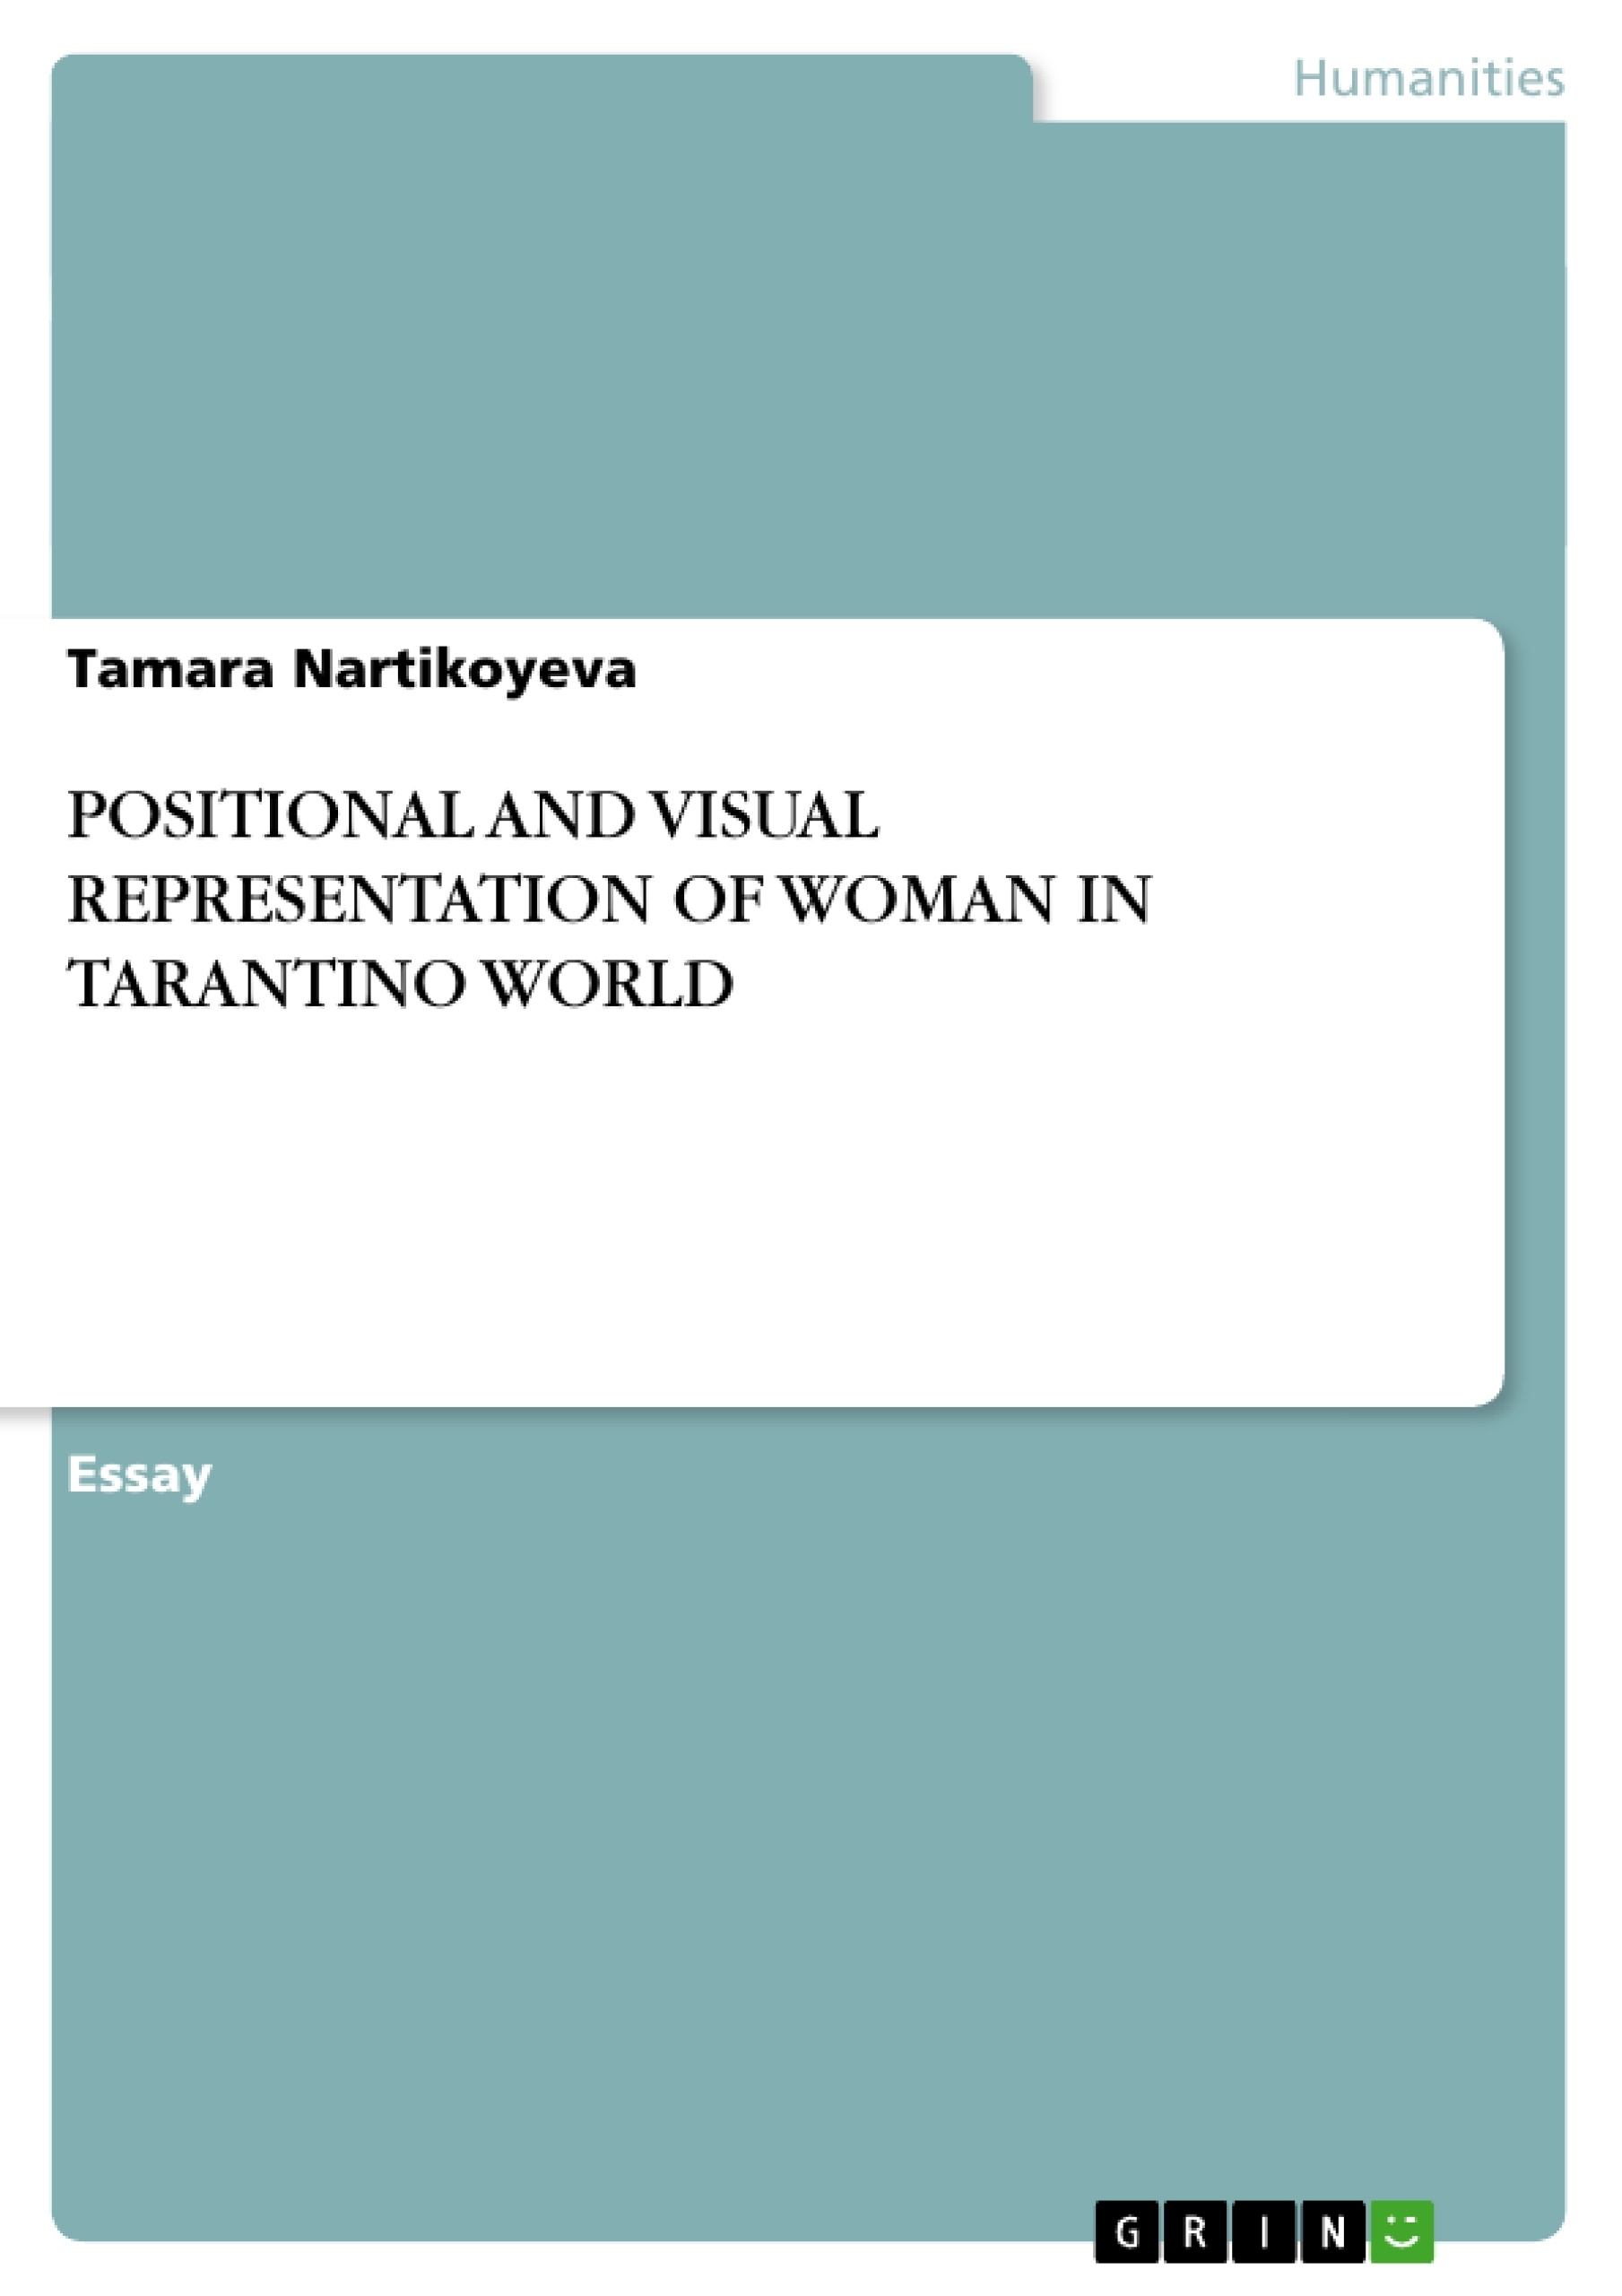 Title: POSITIONAL AND VISUAL REPRESENTATION OF WOMAN IN TARANTINO WORLD